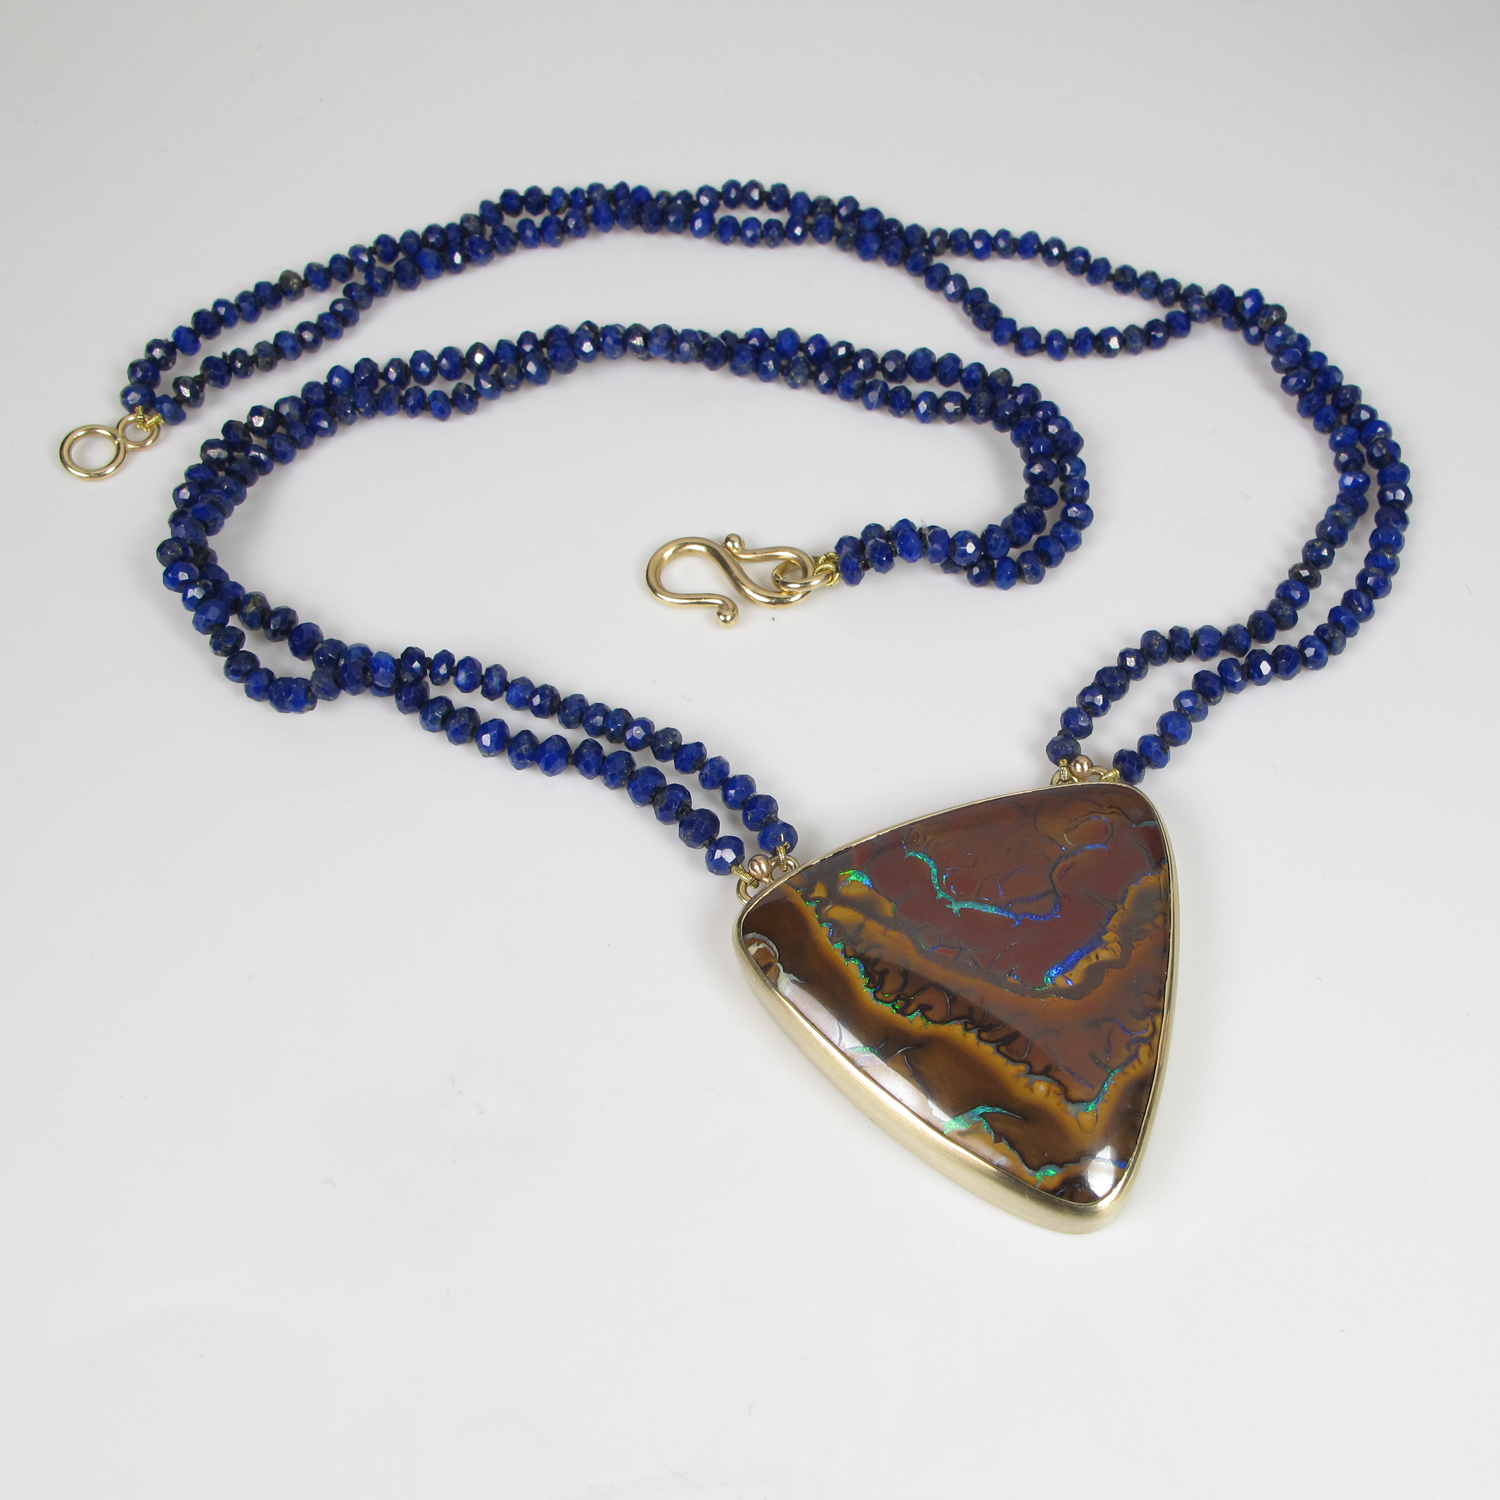 Boulder opal and lapis lazuli bead necklace